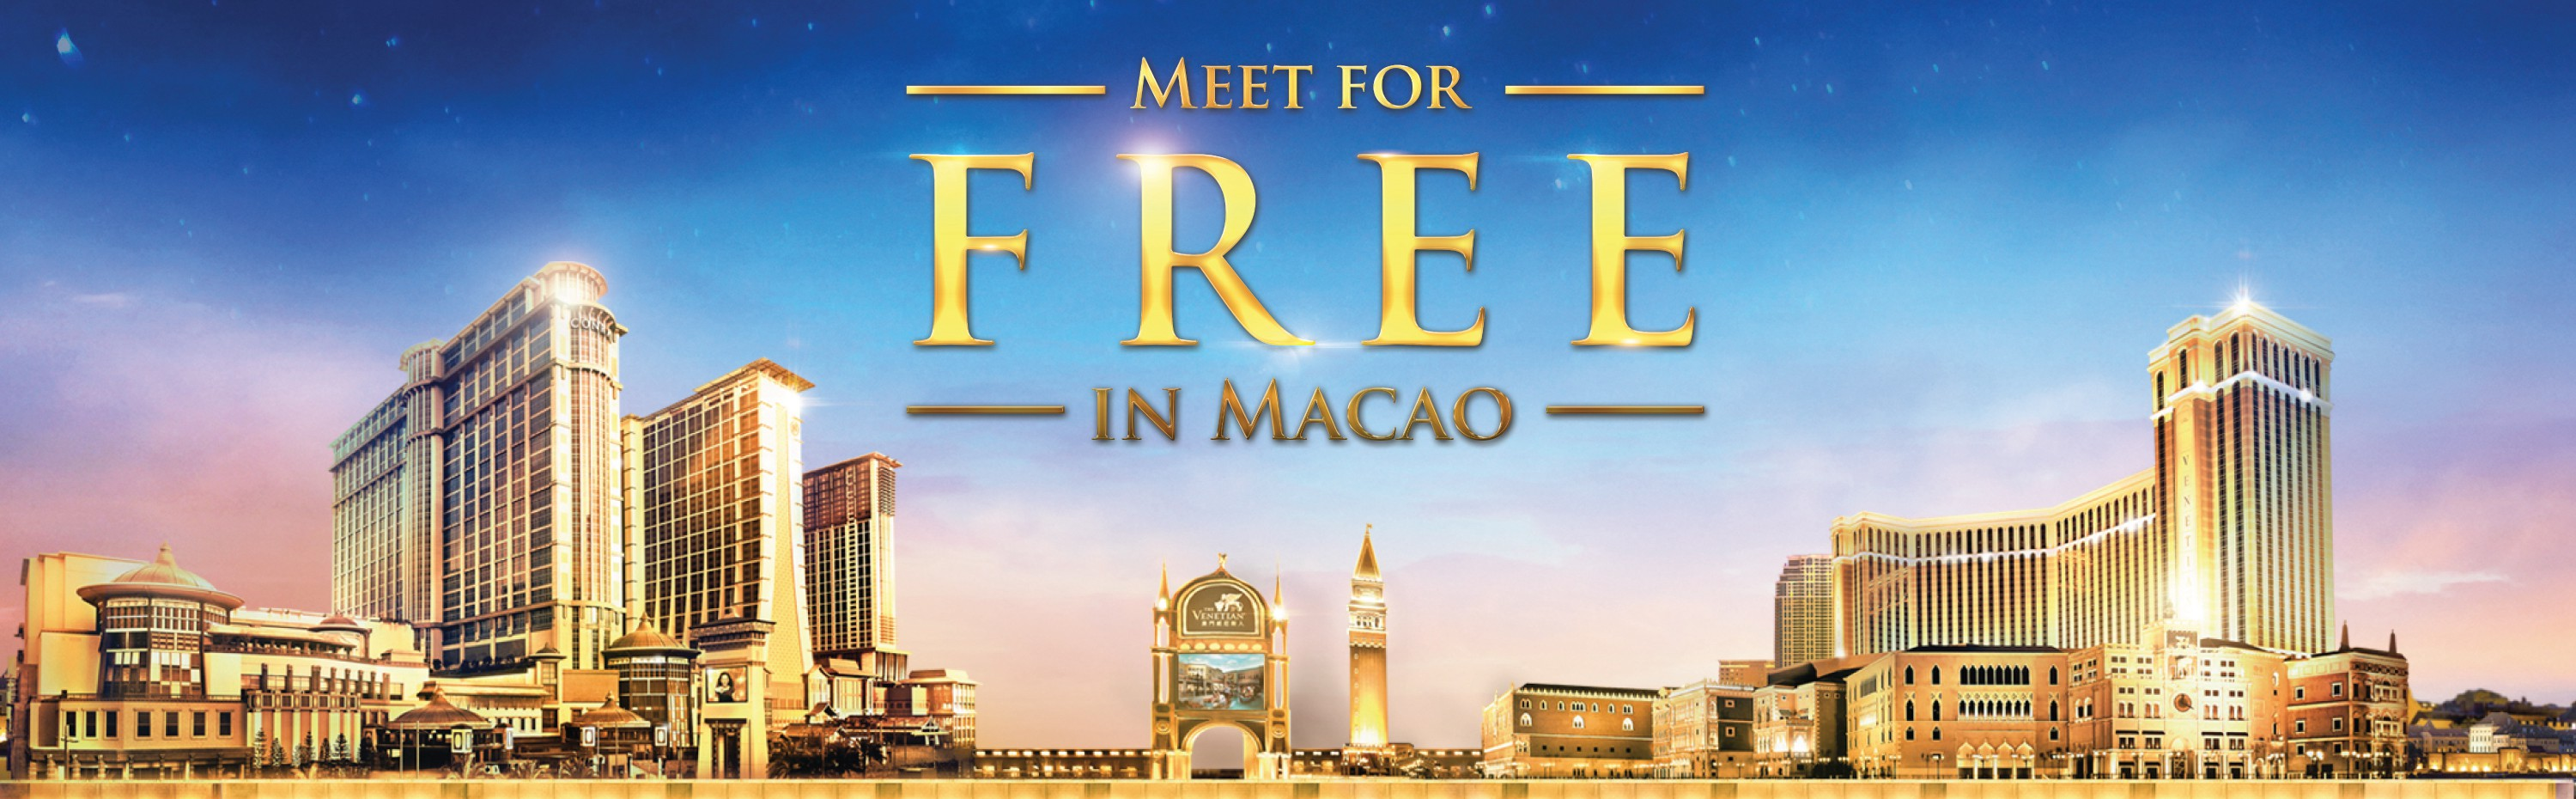 Meet for Free in Macao